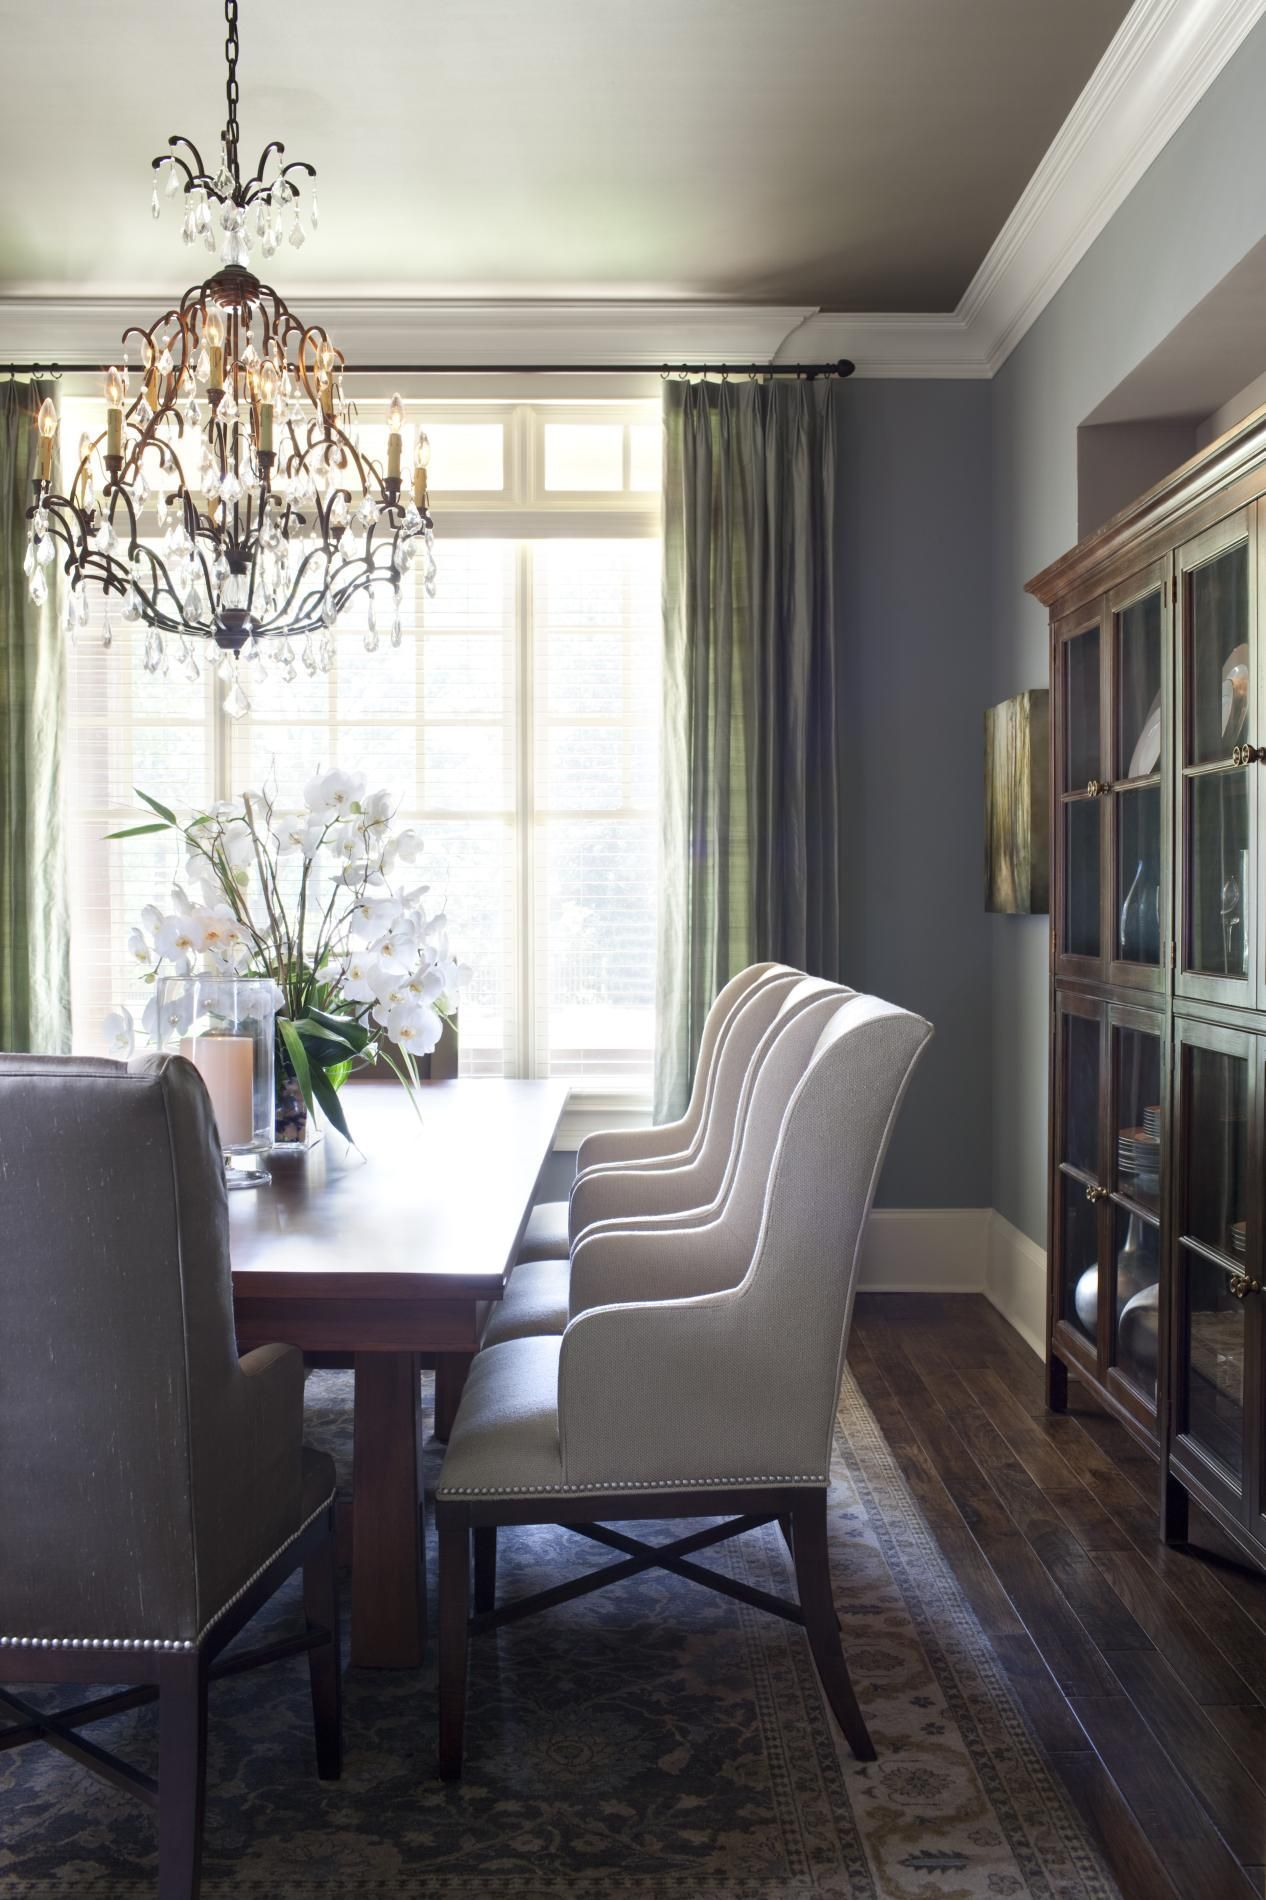 Atlanta transitional dining room by j designs idea of running dining table opposite of way you currently have it transitionalbathroomdecor